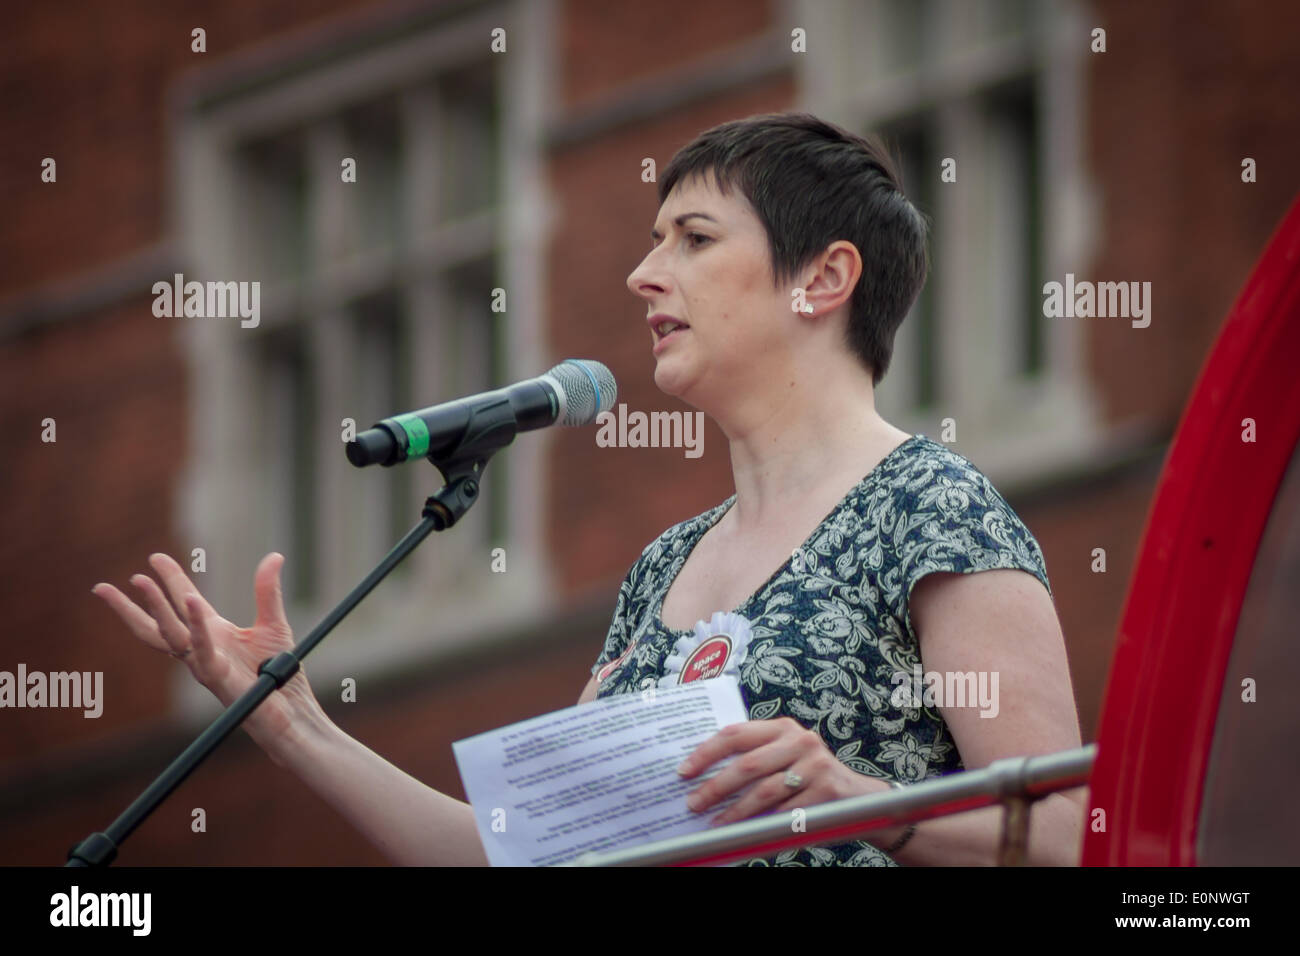 London, UK. 17th May, 2014. Caroline Pidgeon AM, Leader of the Liberal Democrat London Assembly Group, Deputy Chair of the London Assembly's Transport Committee and Deputy Chair of the Police and Crime Committee, speaking at the London Cycling Campaign's Space 4 Cycling Big Ride Credit:  Zefrog/Alamy Live News - Stock Image